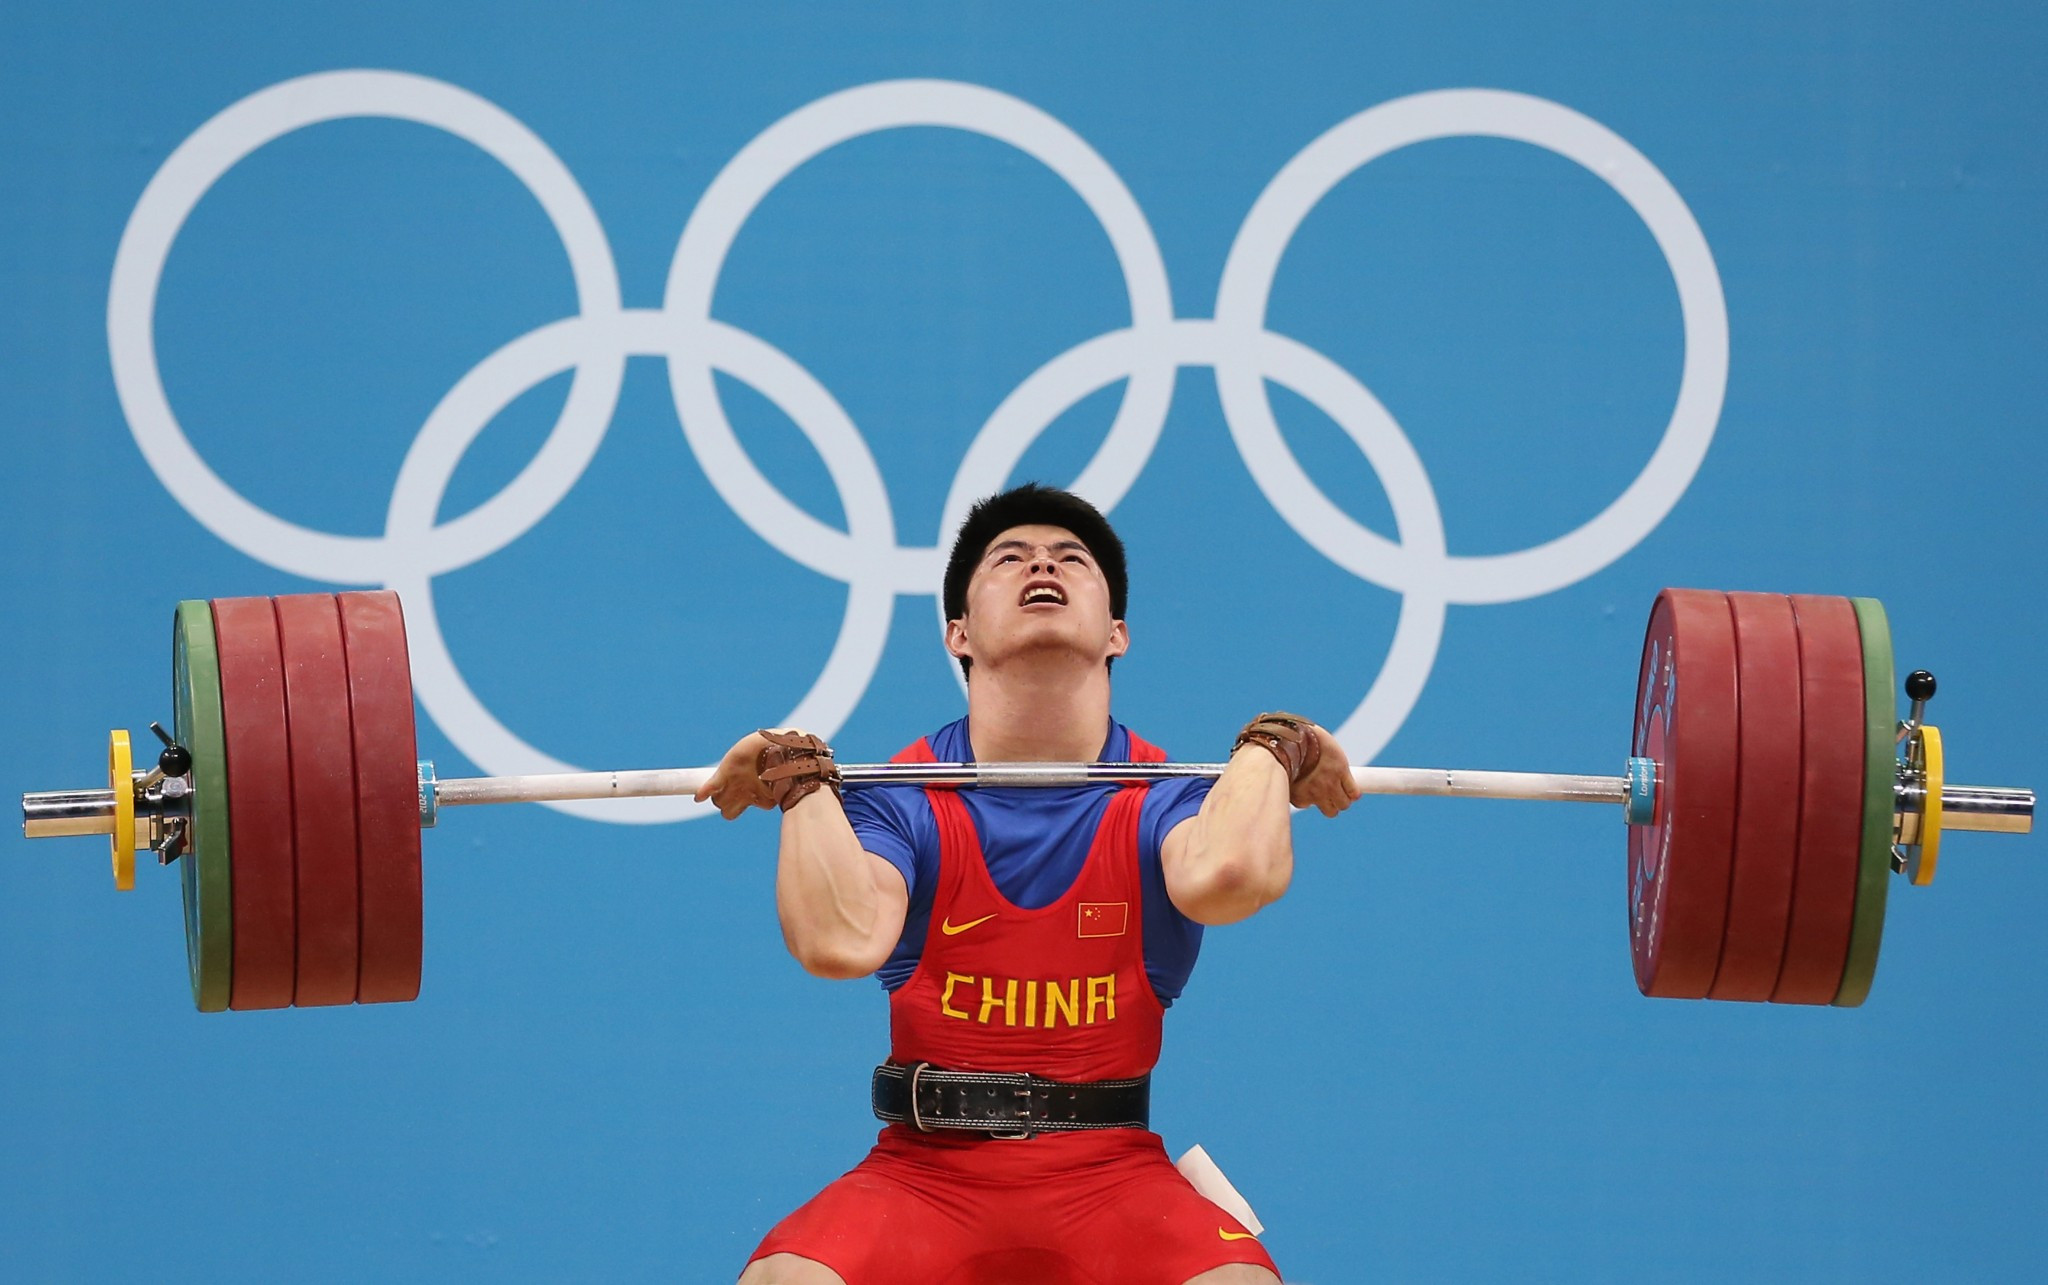 China and Russia among nine nations expected to be banned from 2017 IWF World Championships